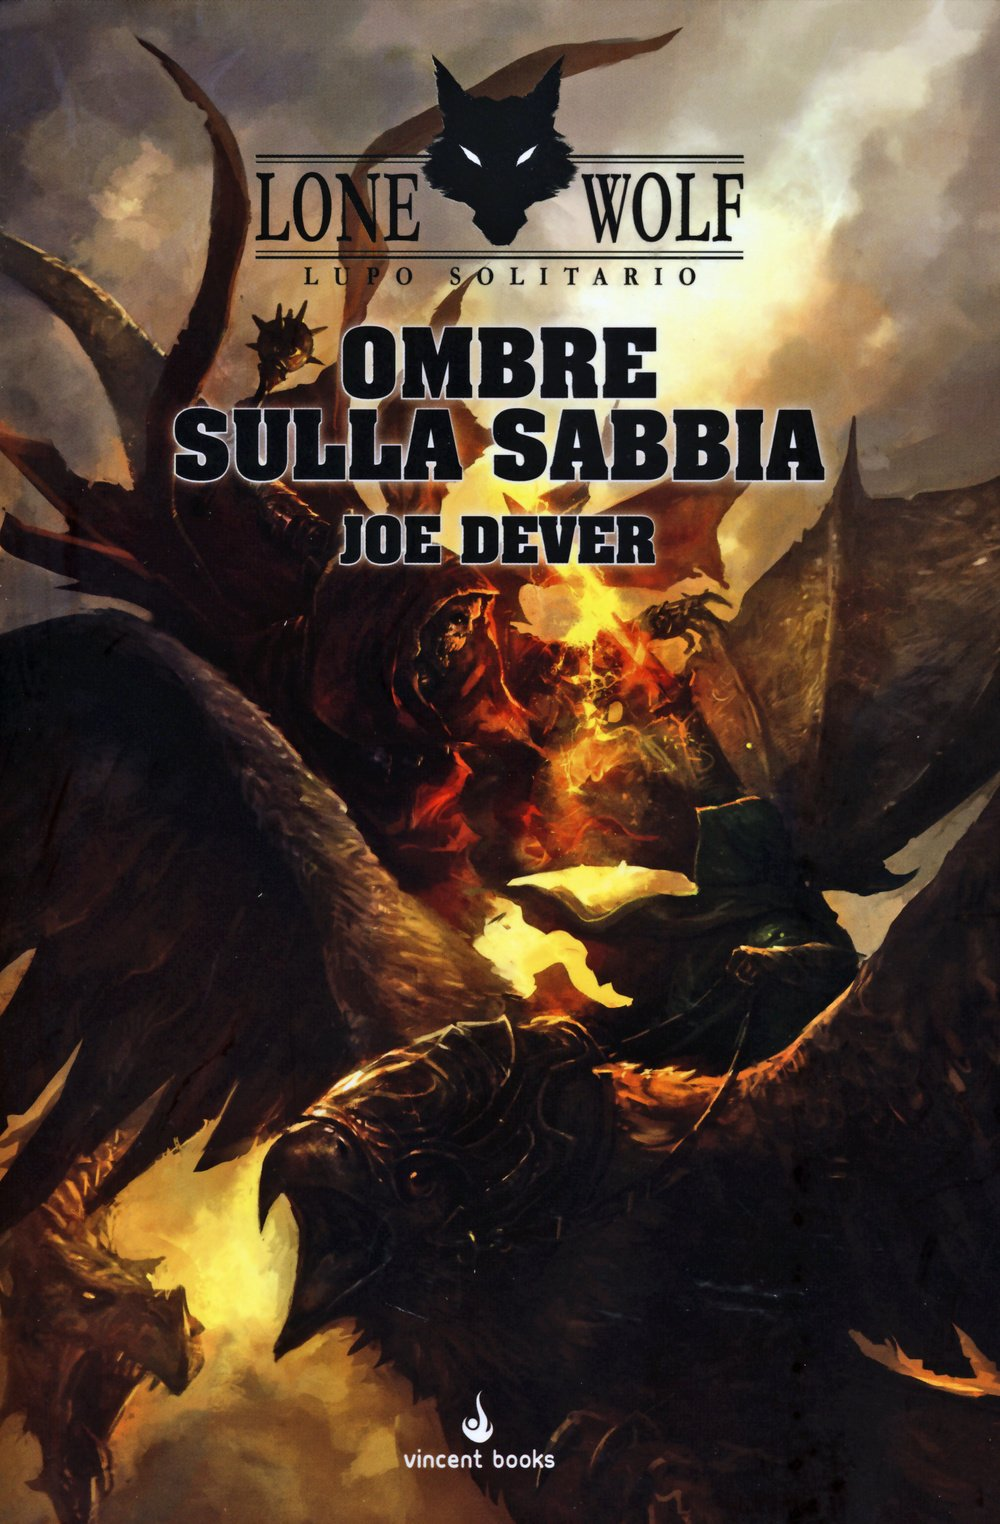 Image result for ombre sulla sabbia lone wolf